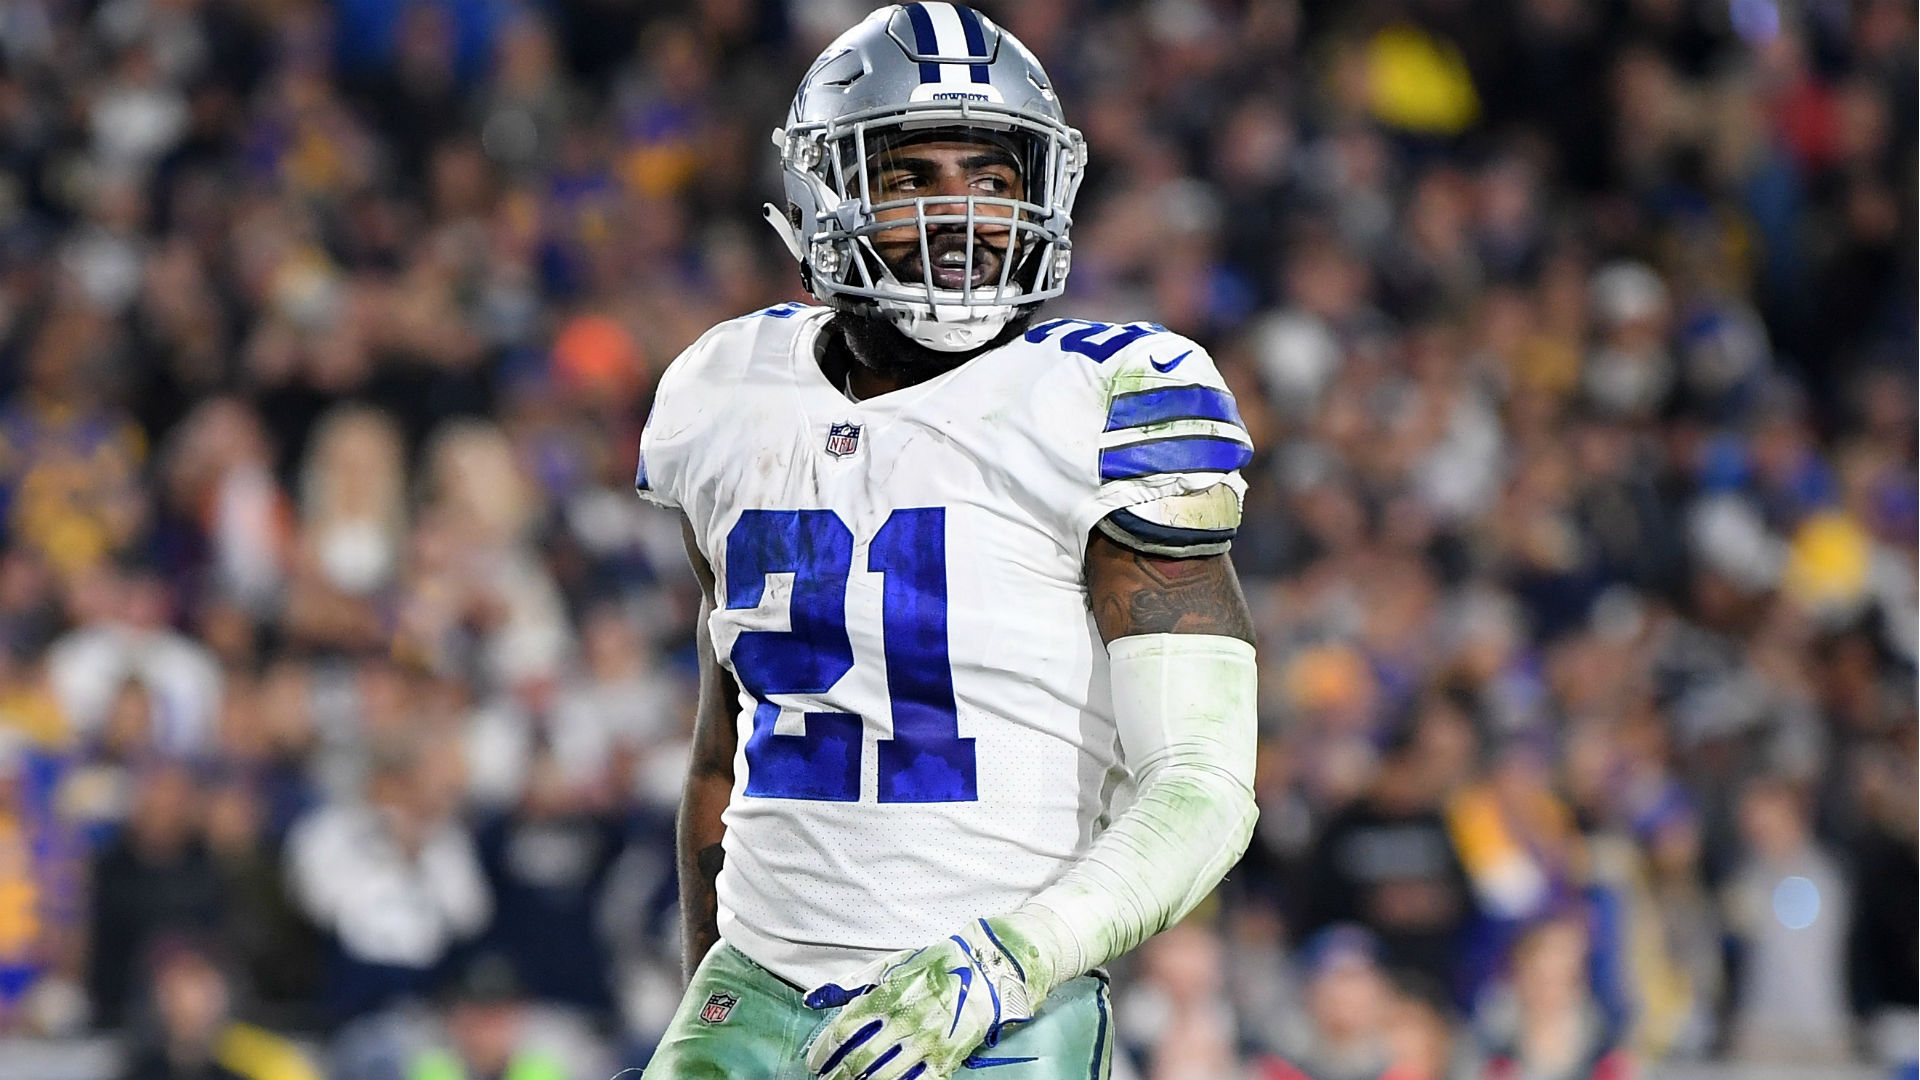 Ezekiel Elliott feels he is ready to play a bigger role for the Dallas Cowboys.